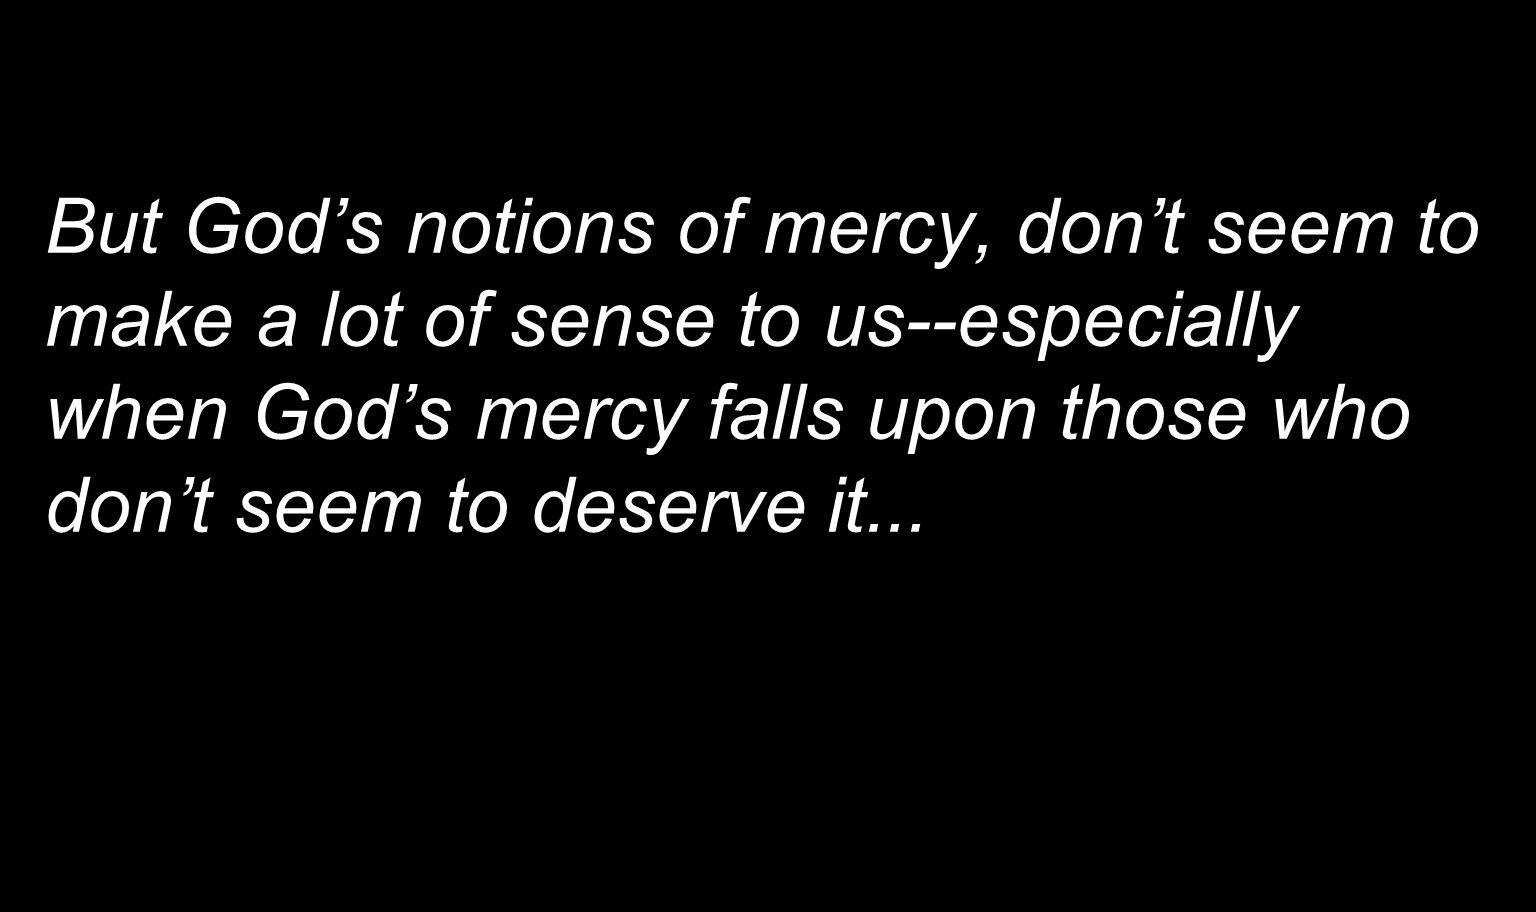 But God's notions of mercy, don't seem to make a lot of sense to us--especially when God's mercy falls upon those who don't seem to deserve it...